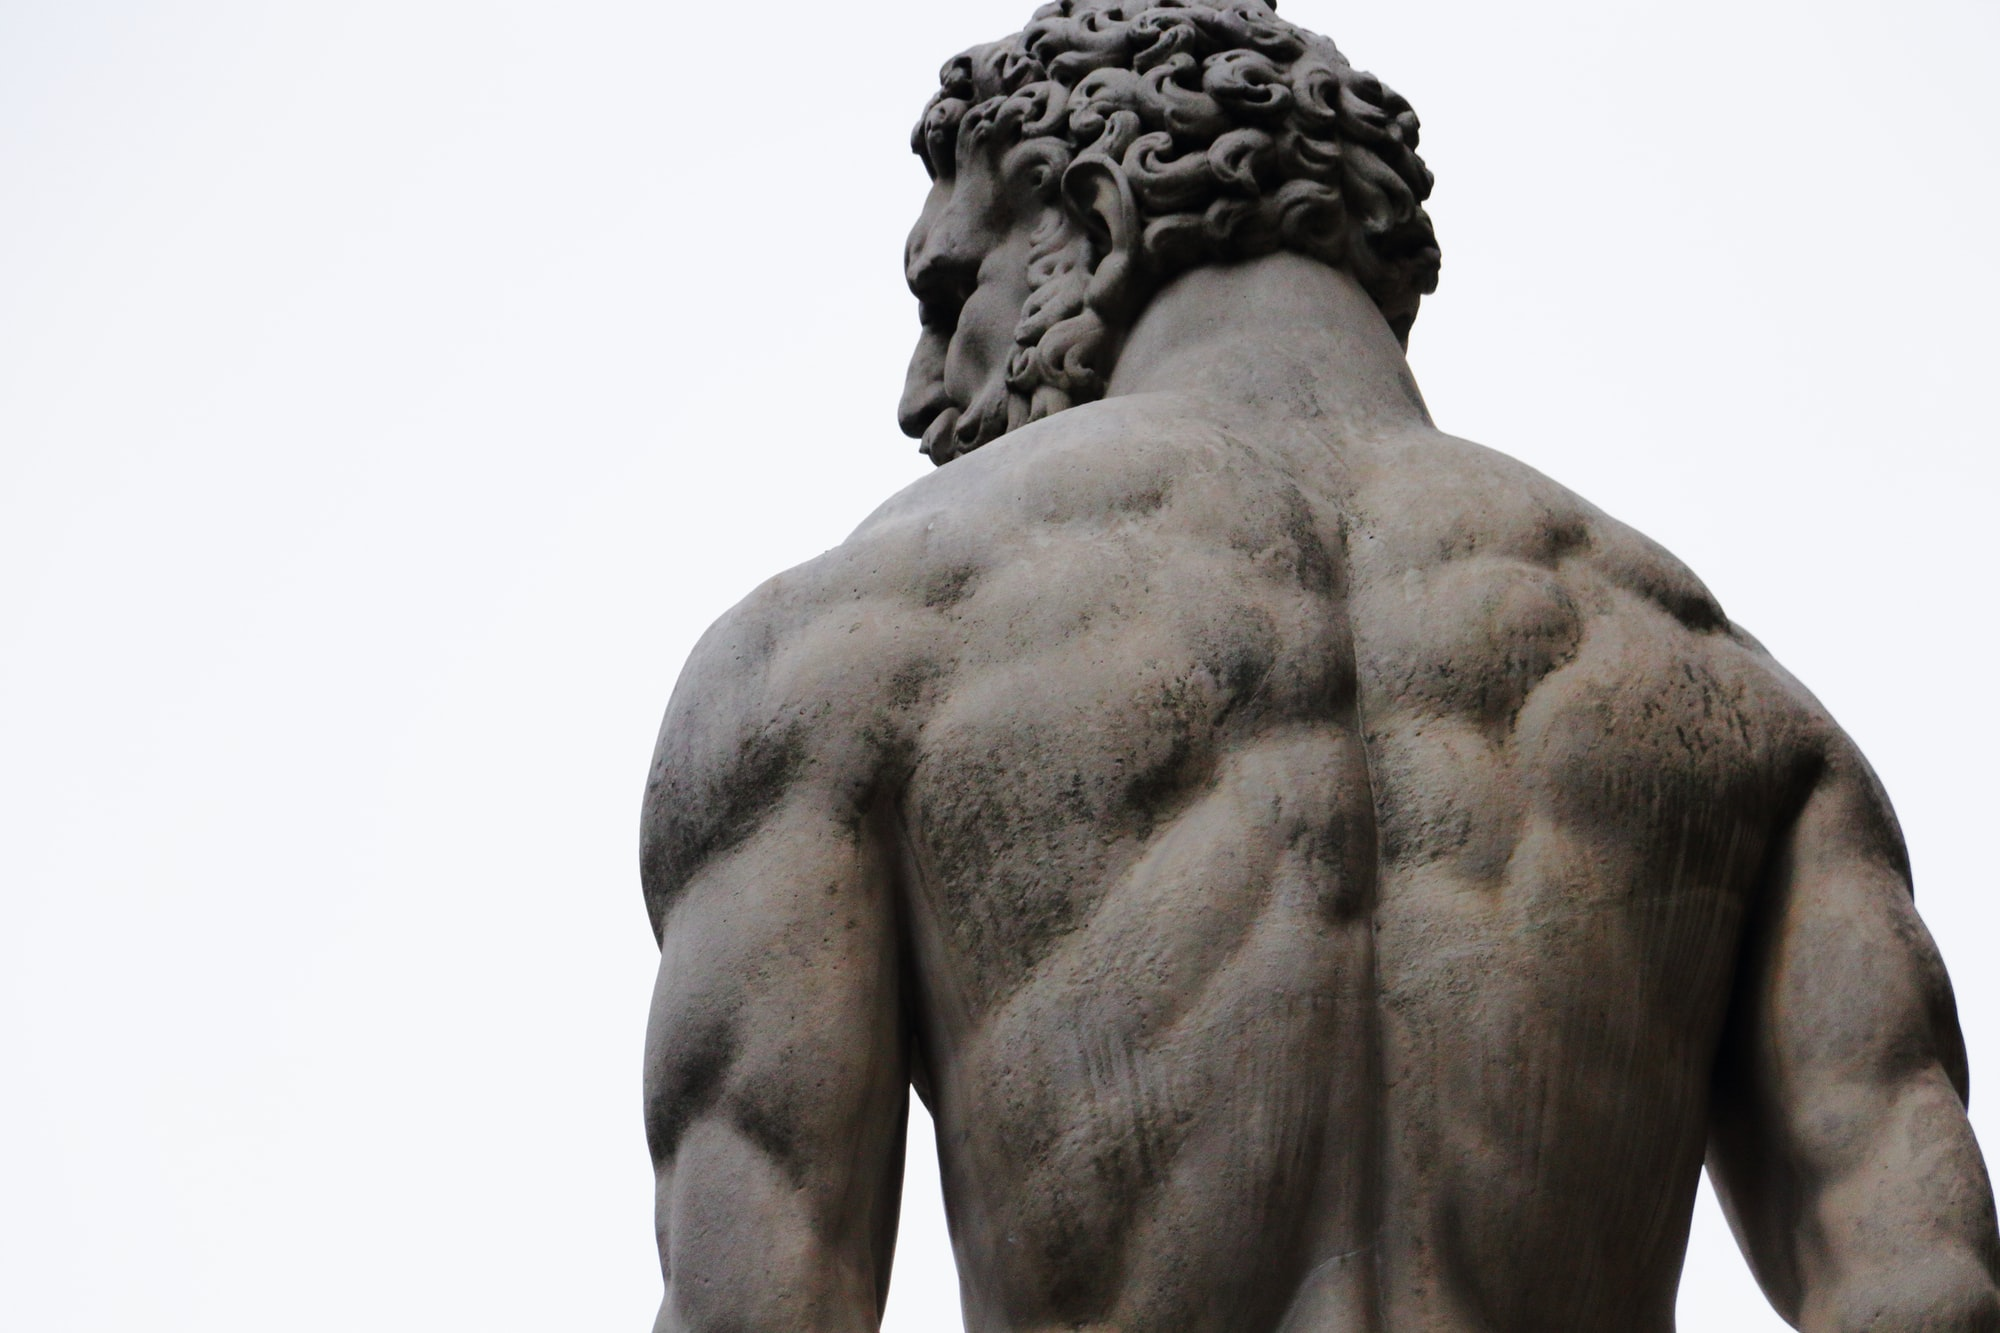 Nope, Neanderthal genes didn't make your back hairy by imone Pellegrini for Unsplash